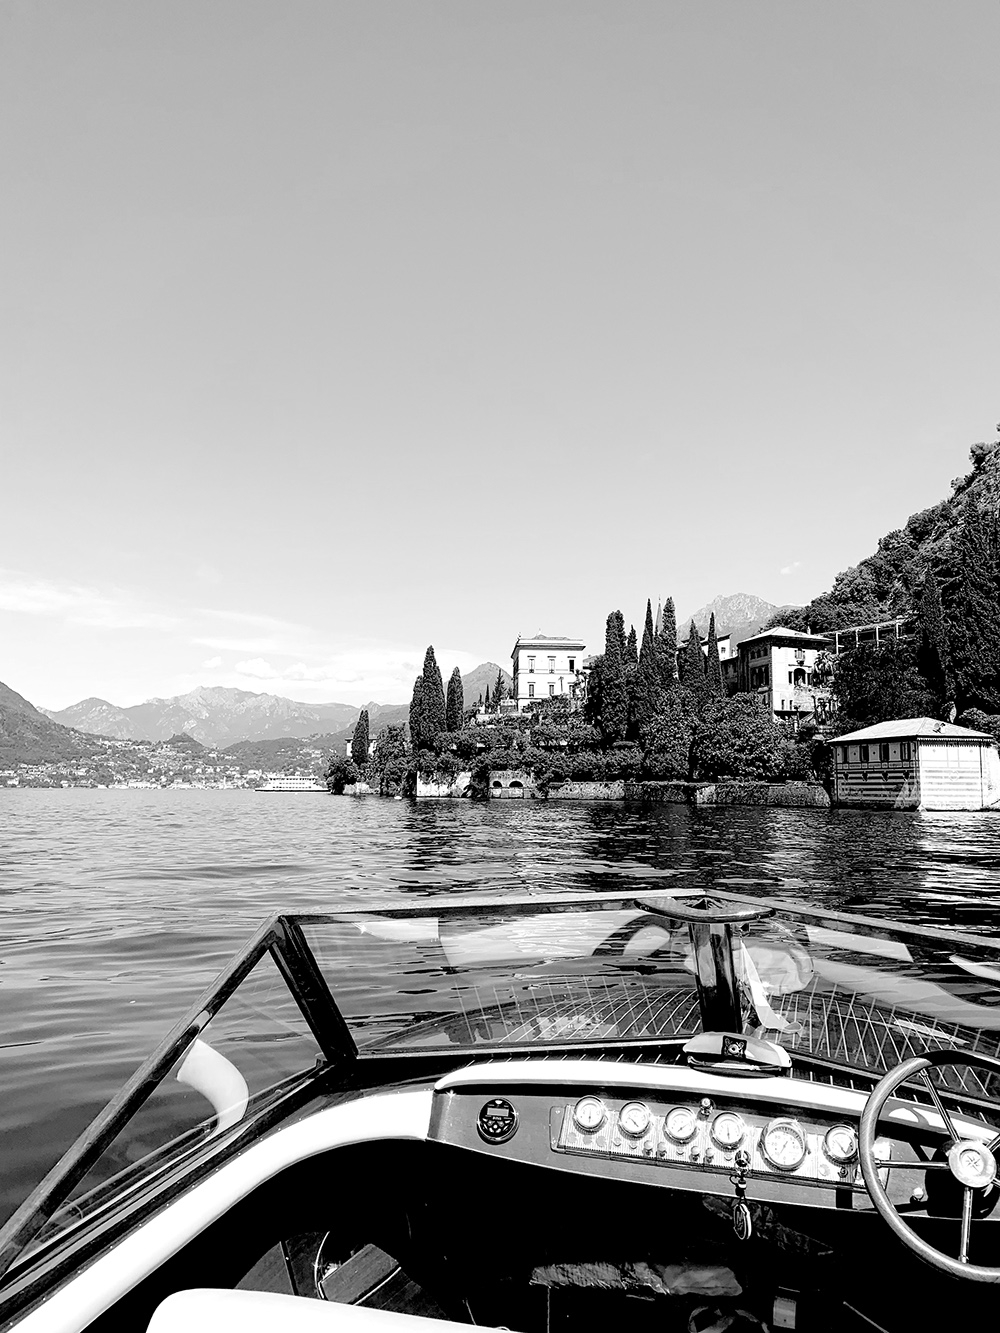 A black and white image taken from a boat anchored on the lake, highlighting the tall trees, dense shrubbery and classic Italian buildings ahead.